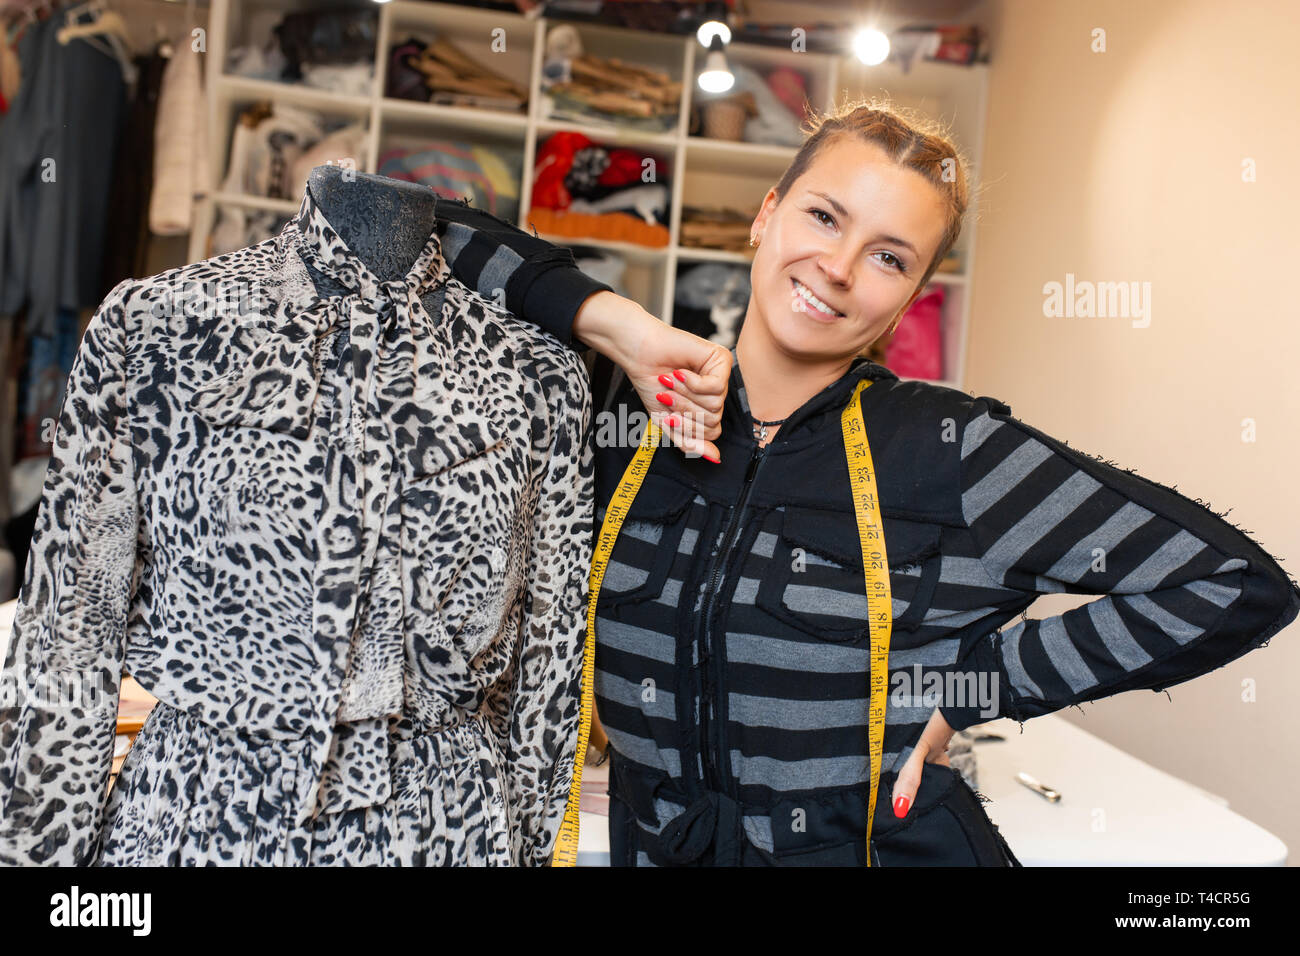 Dressmaker With Mannequin As Professional Fashion Designer Female Dressmaker Adjusting Clothes On Tailoring Mannequin And Smiling Stock Photo Alamy